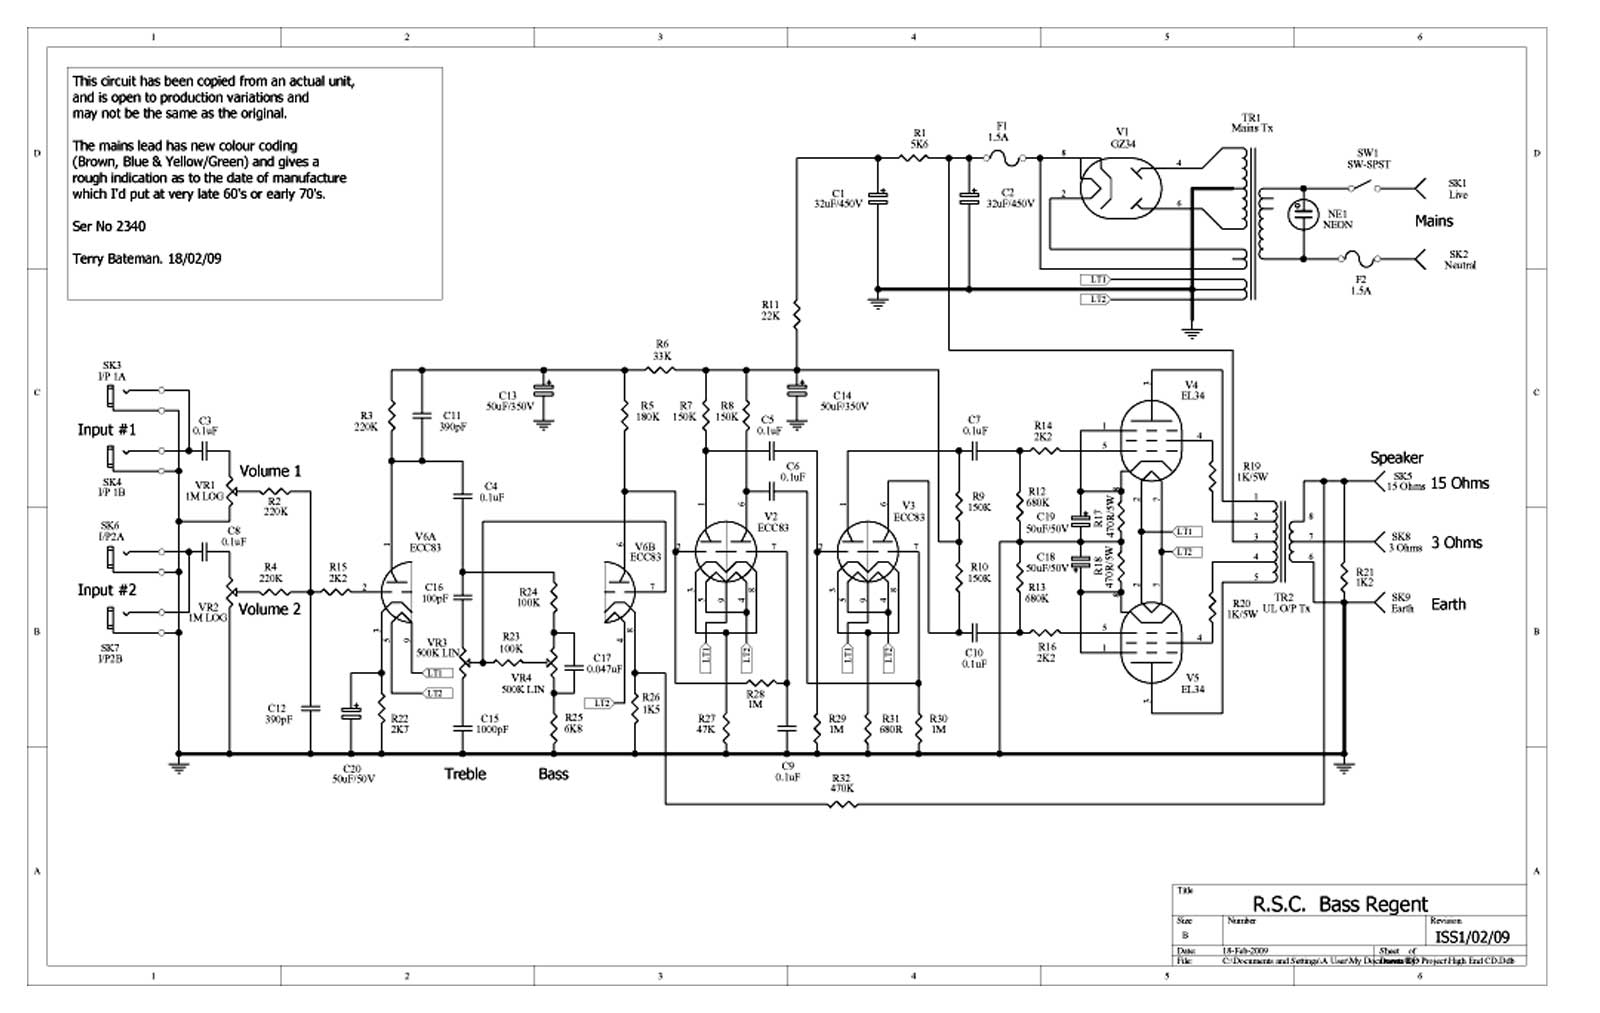 Linear Rsc Bass Regent Schematic Diagram 91 Acura Legend Engine Return To Carslbro Diagrams Page